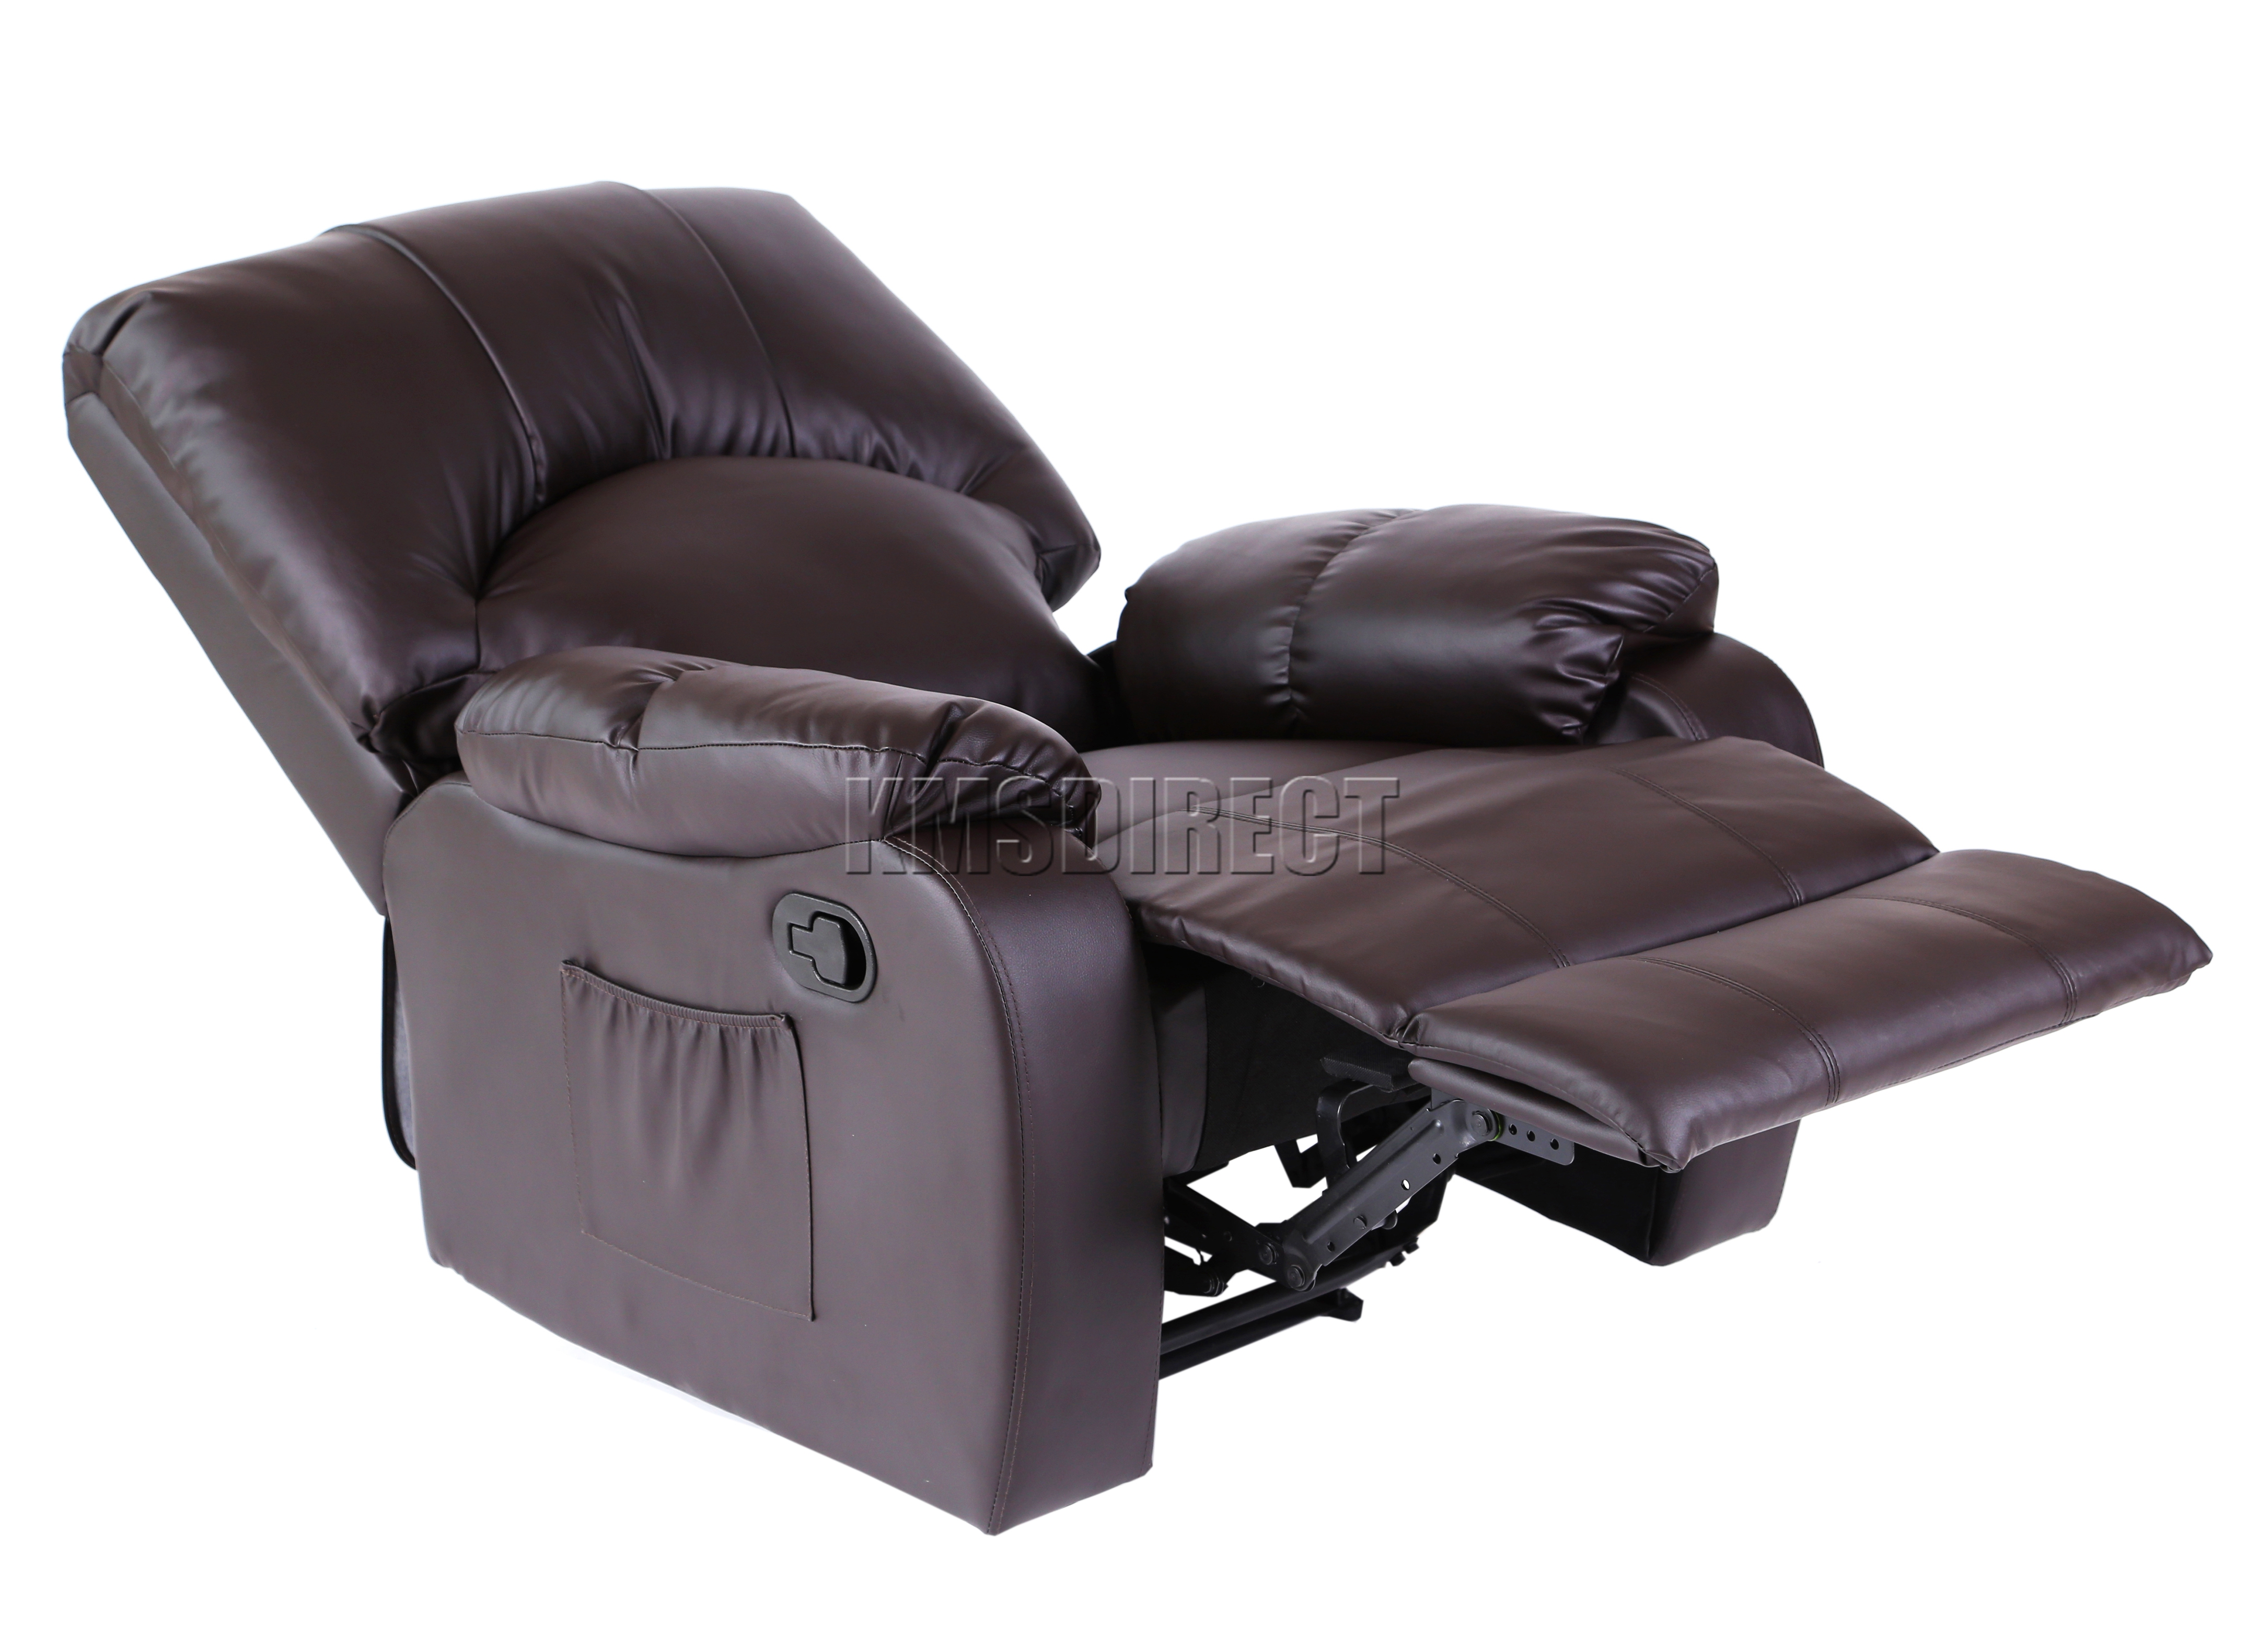 Details about FoxHunter Leather Massage Cinema Recliner Chair Sofa Armchair Heating MLS 03 New